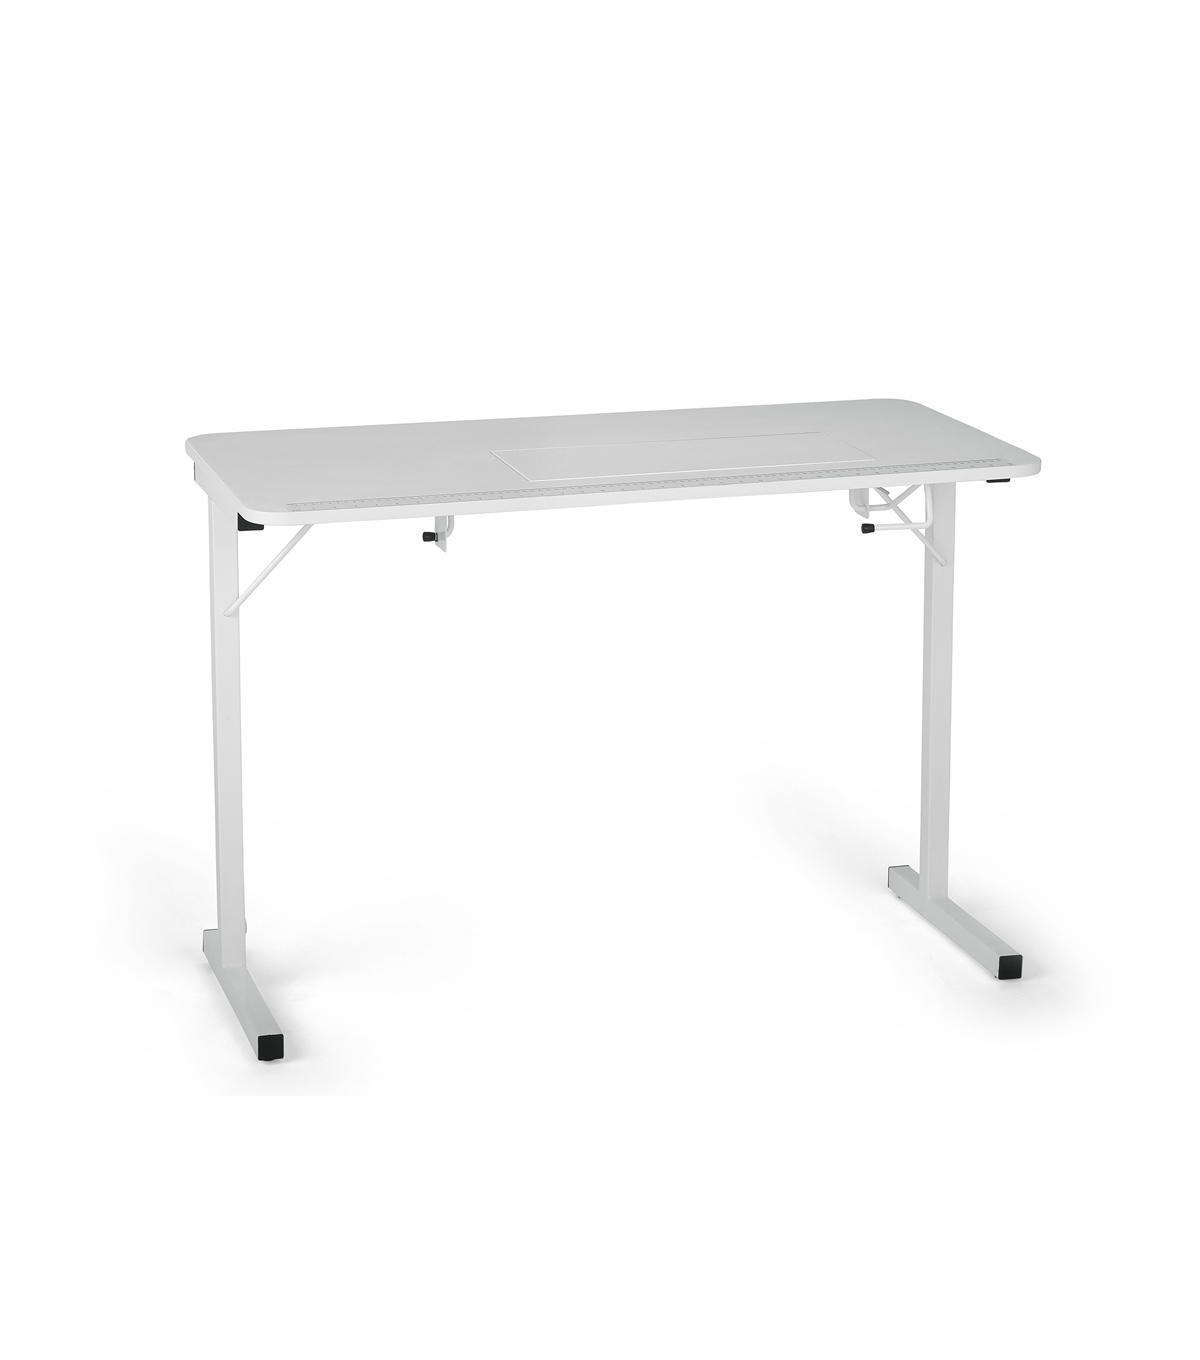 Arrow Sew Much More Craft Hobby Table White